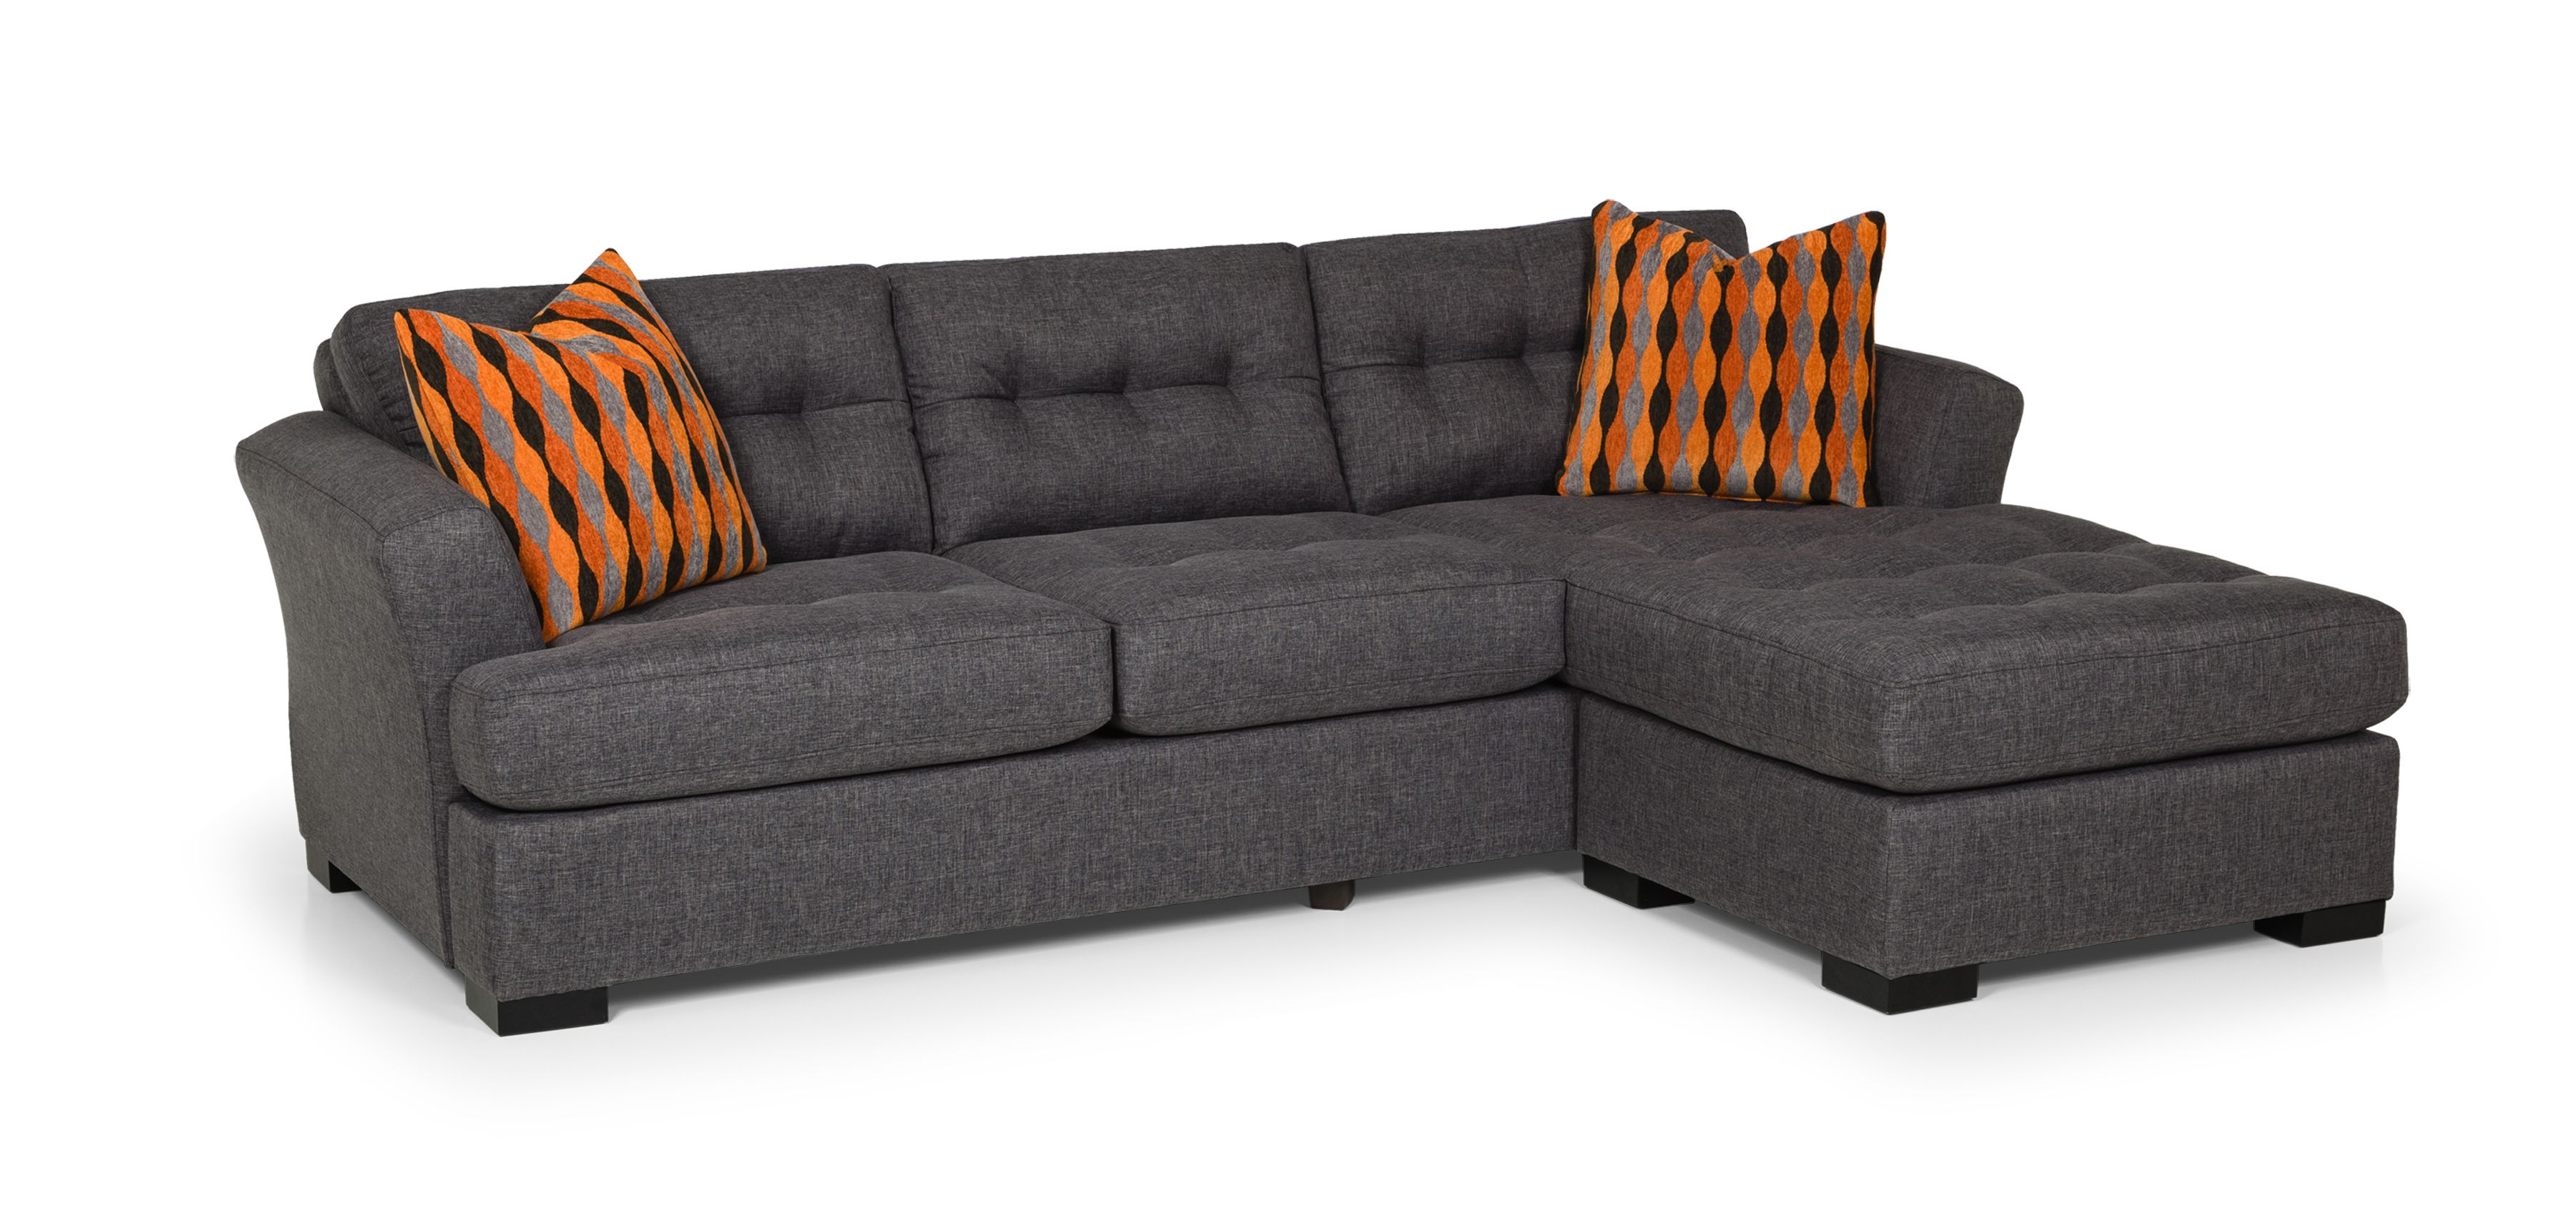 Welcome to Stanton Sofas (With images)  Sofa furniture, Furniture